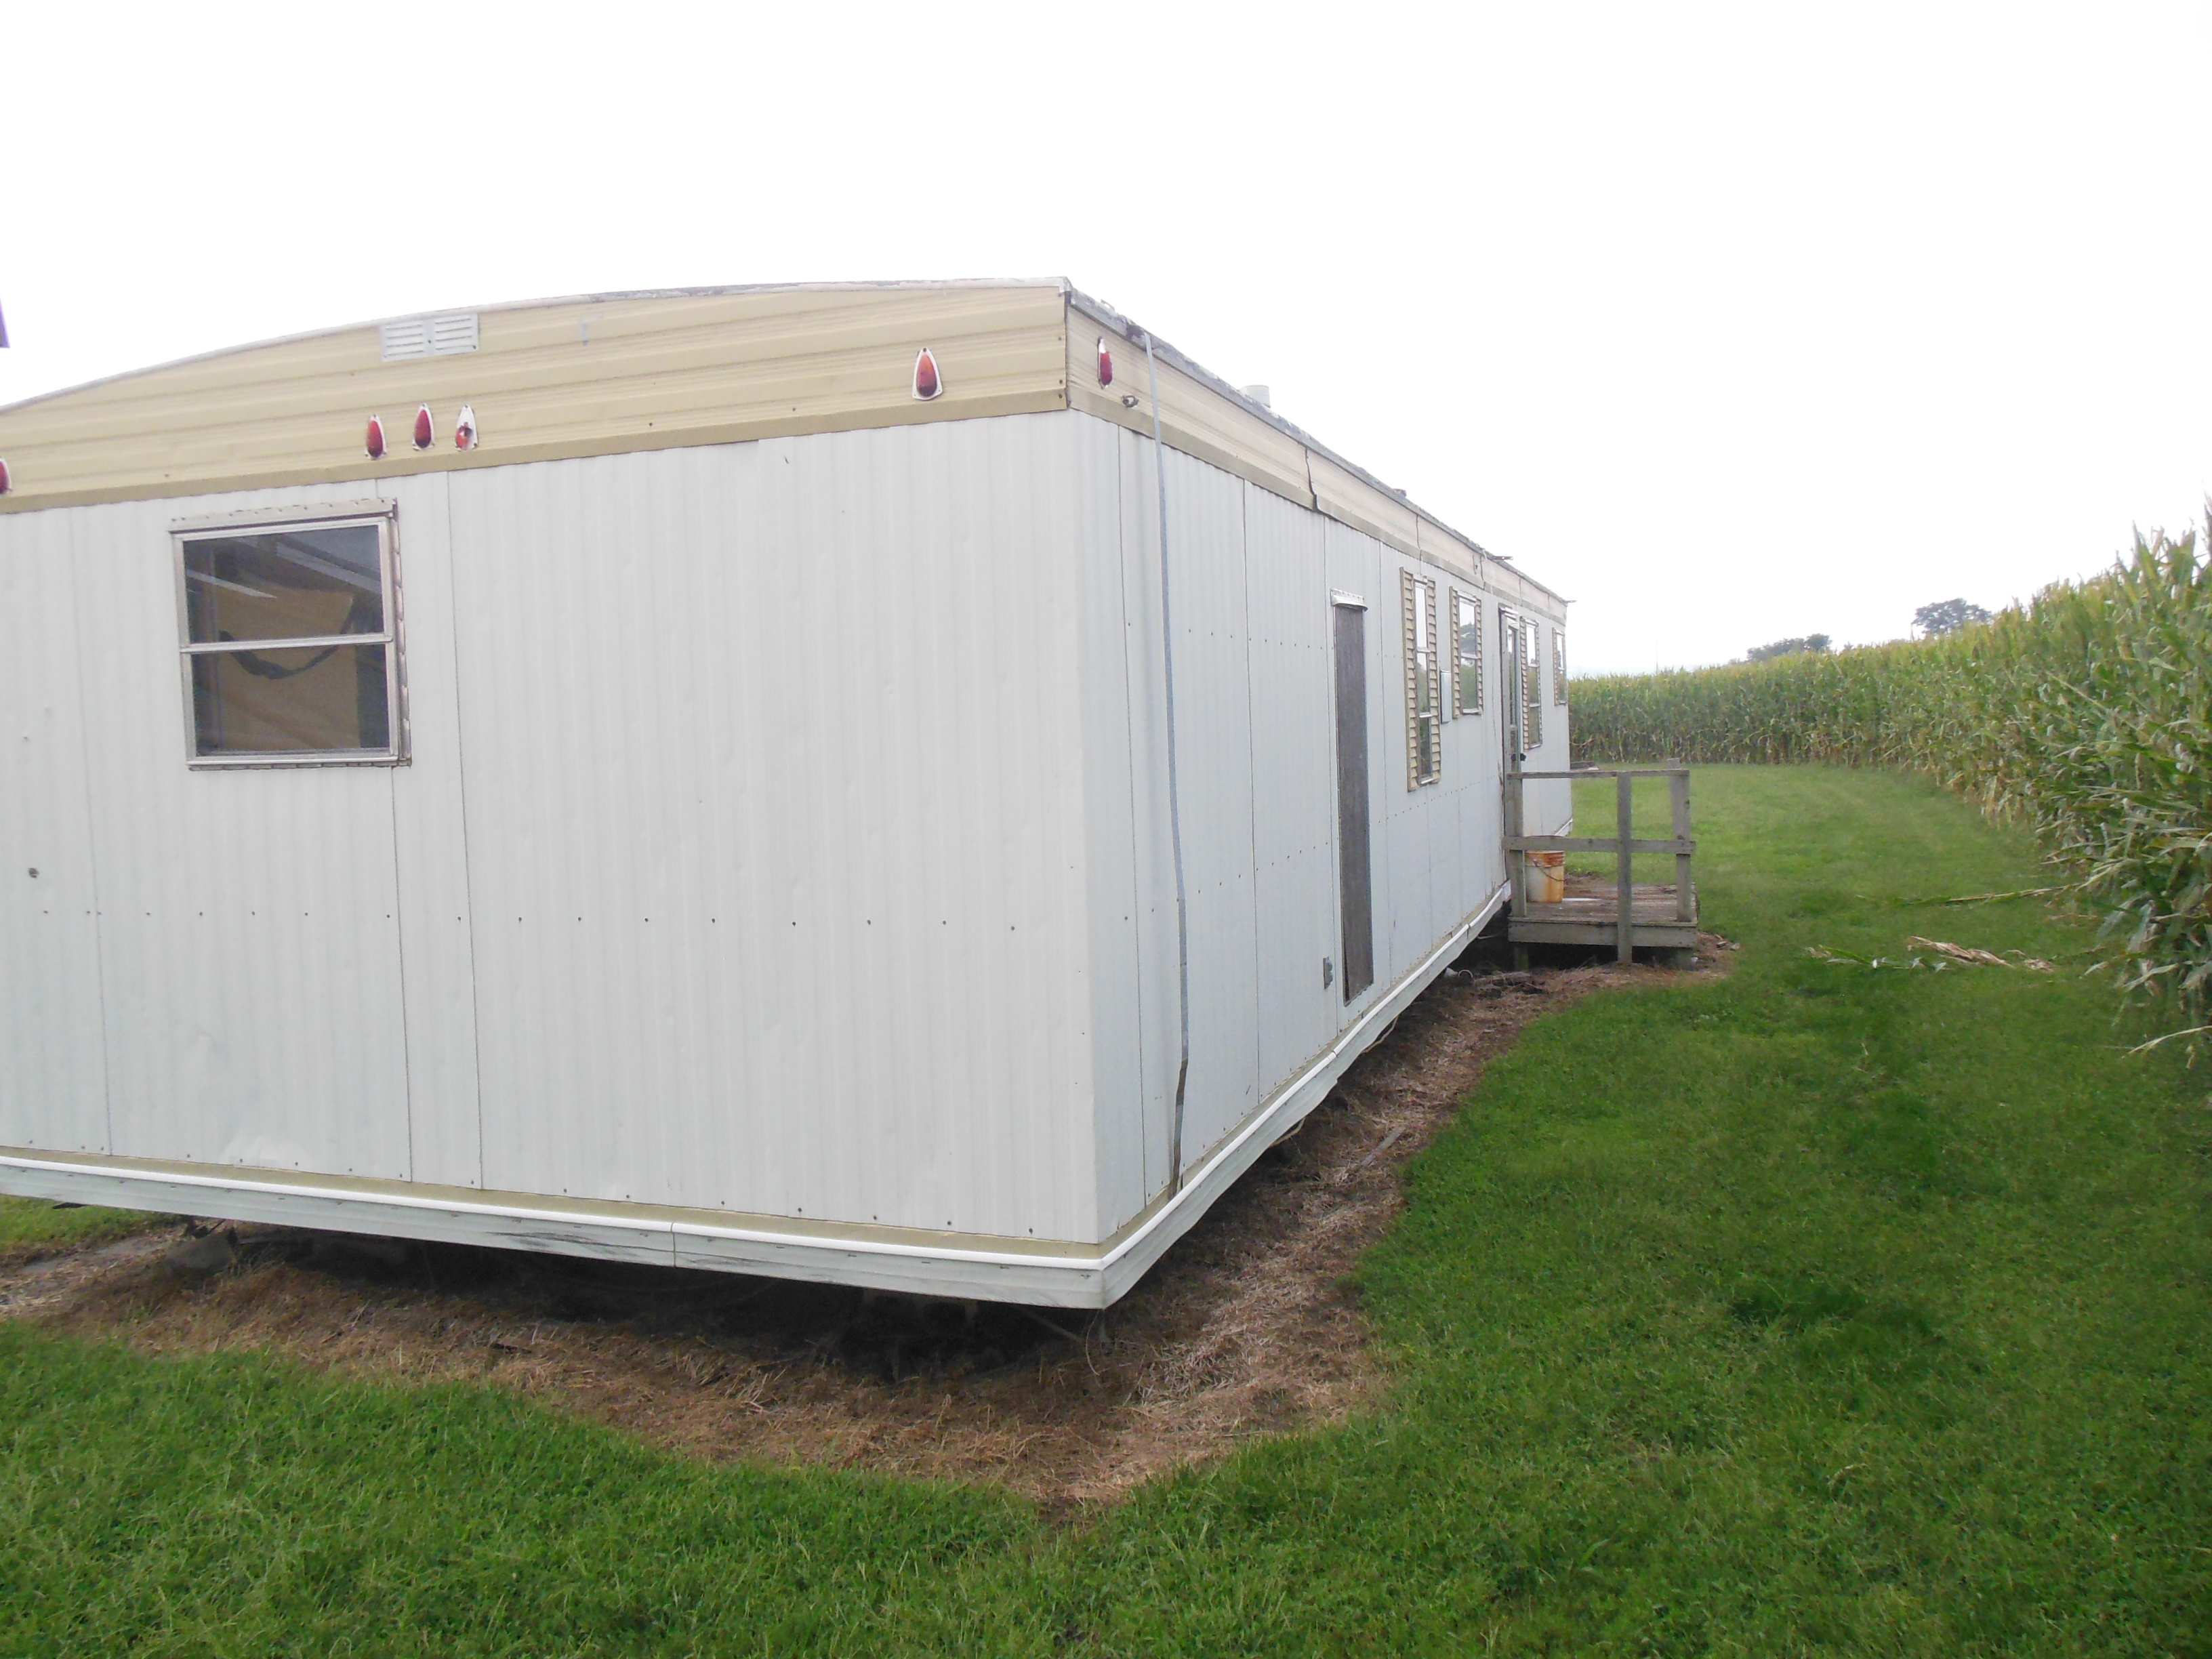 Salvage trailer home